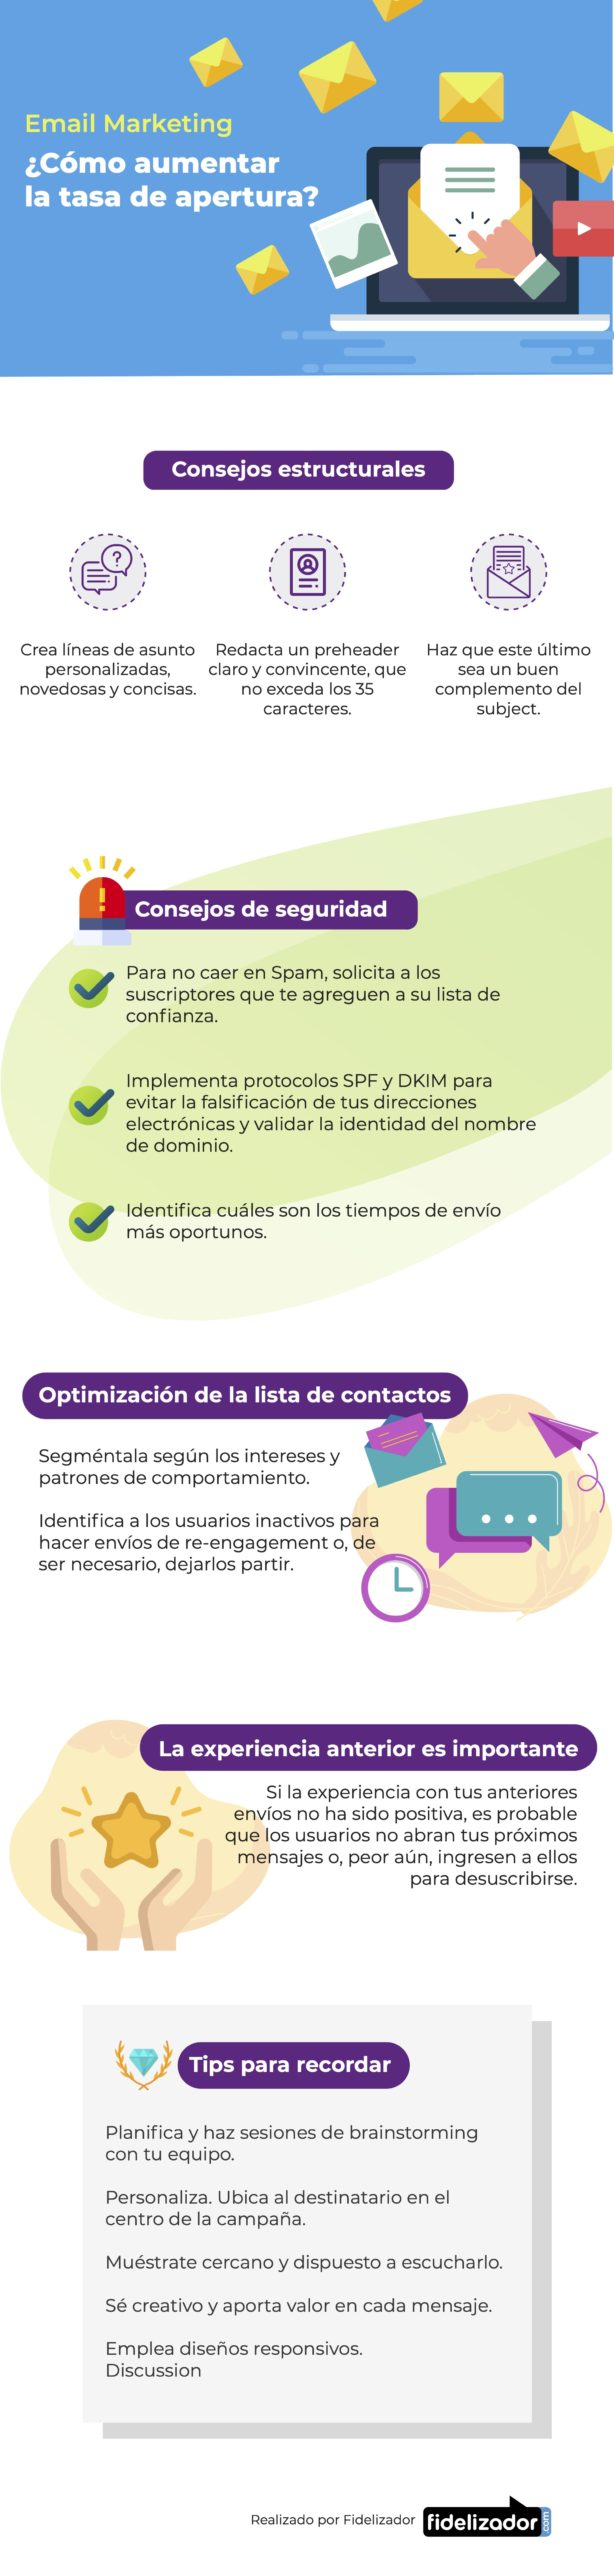 Cómo aumentar la tasa de apertura en Email Marketing #infografia #infographic #marketing